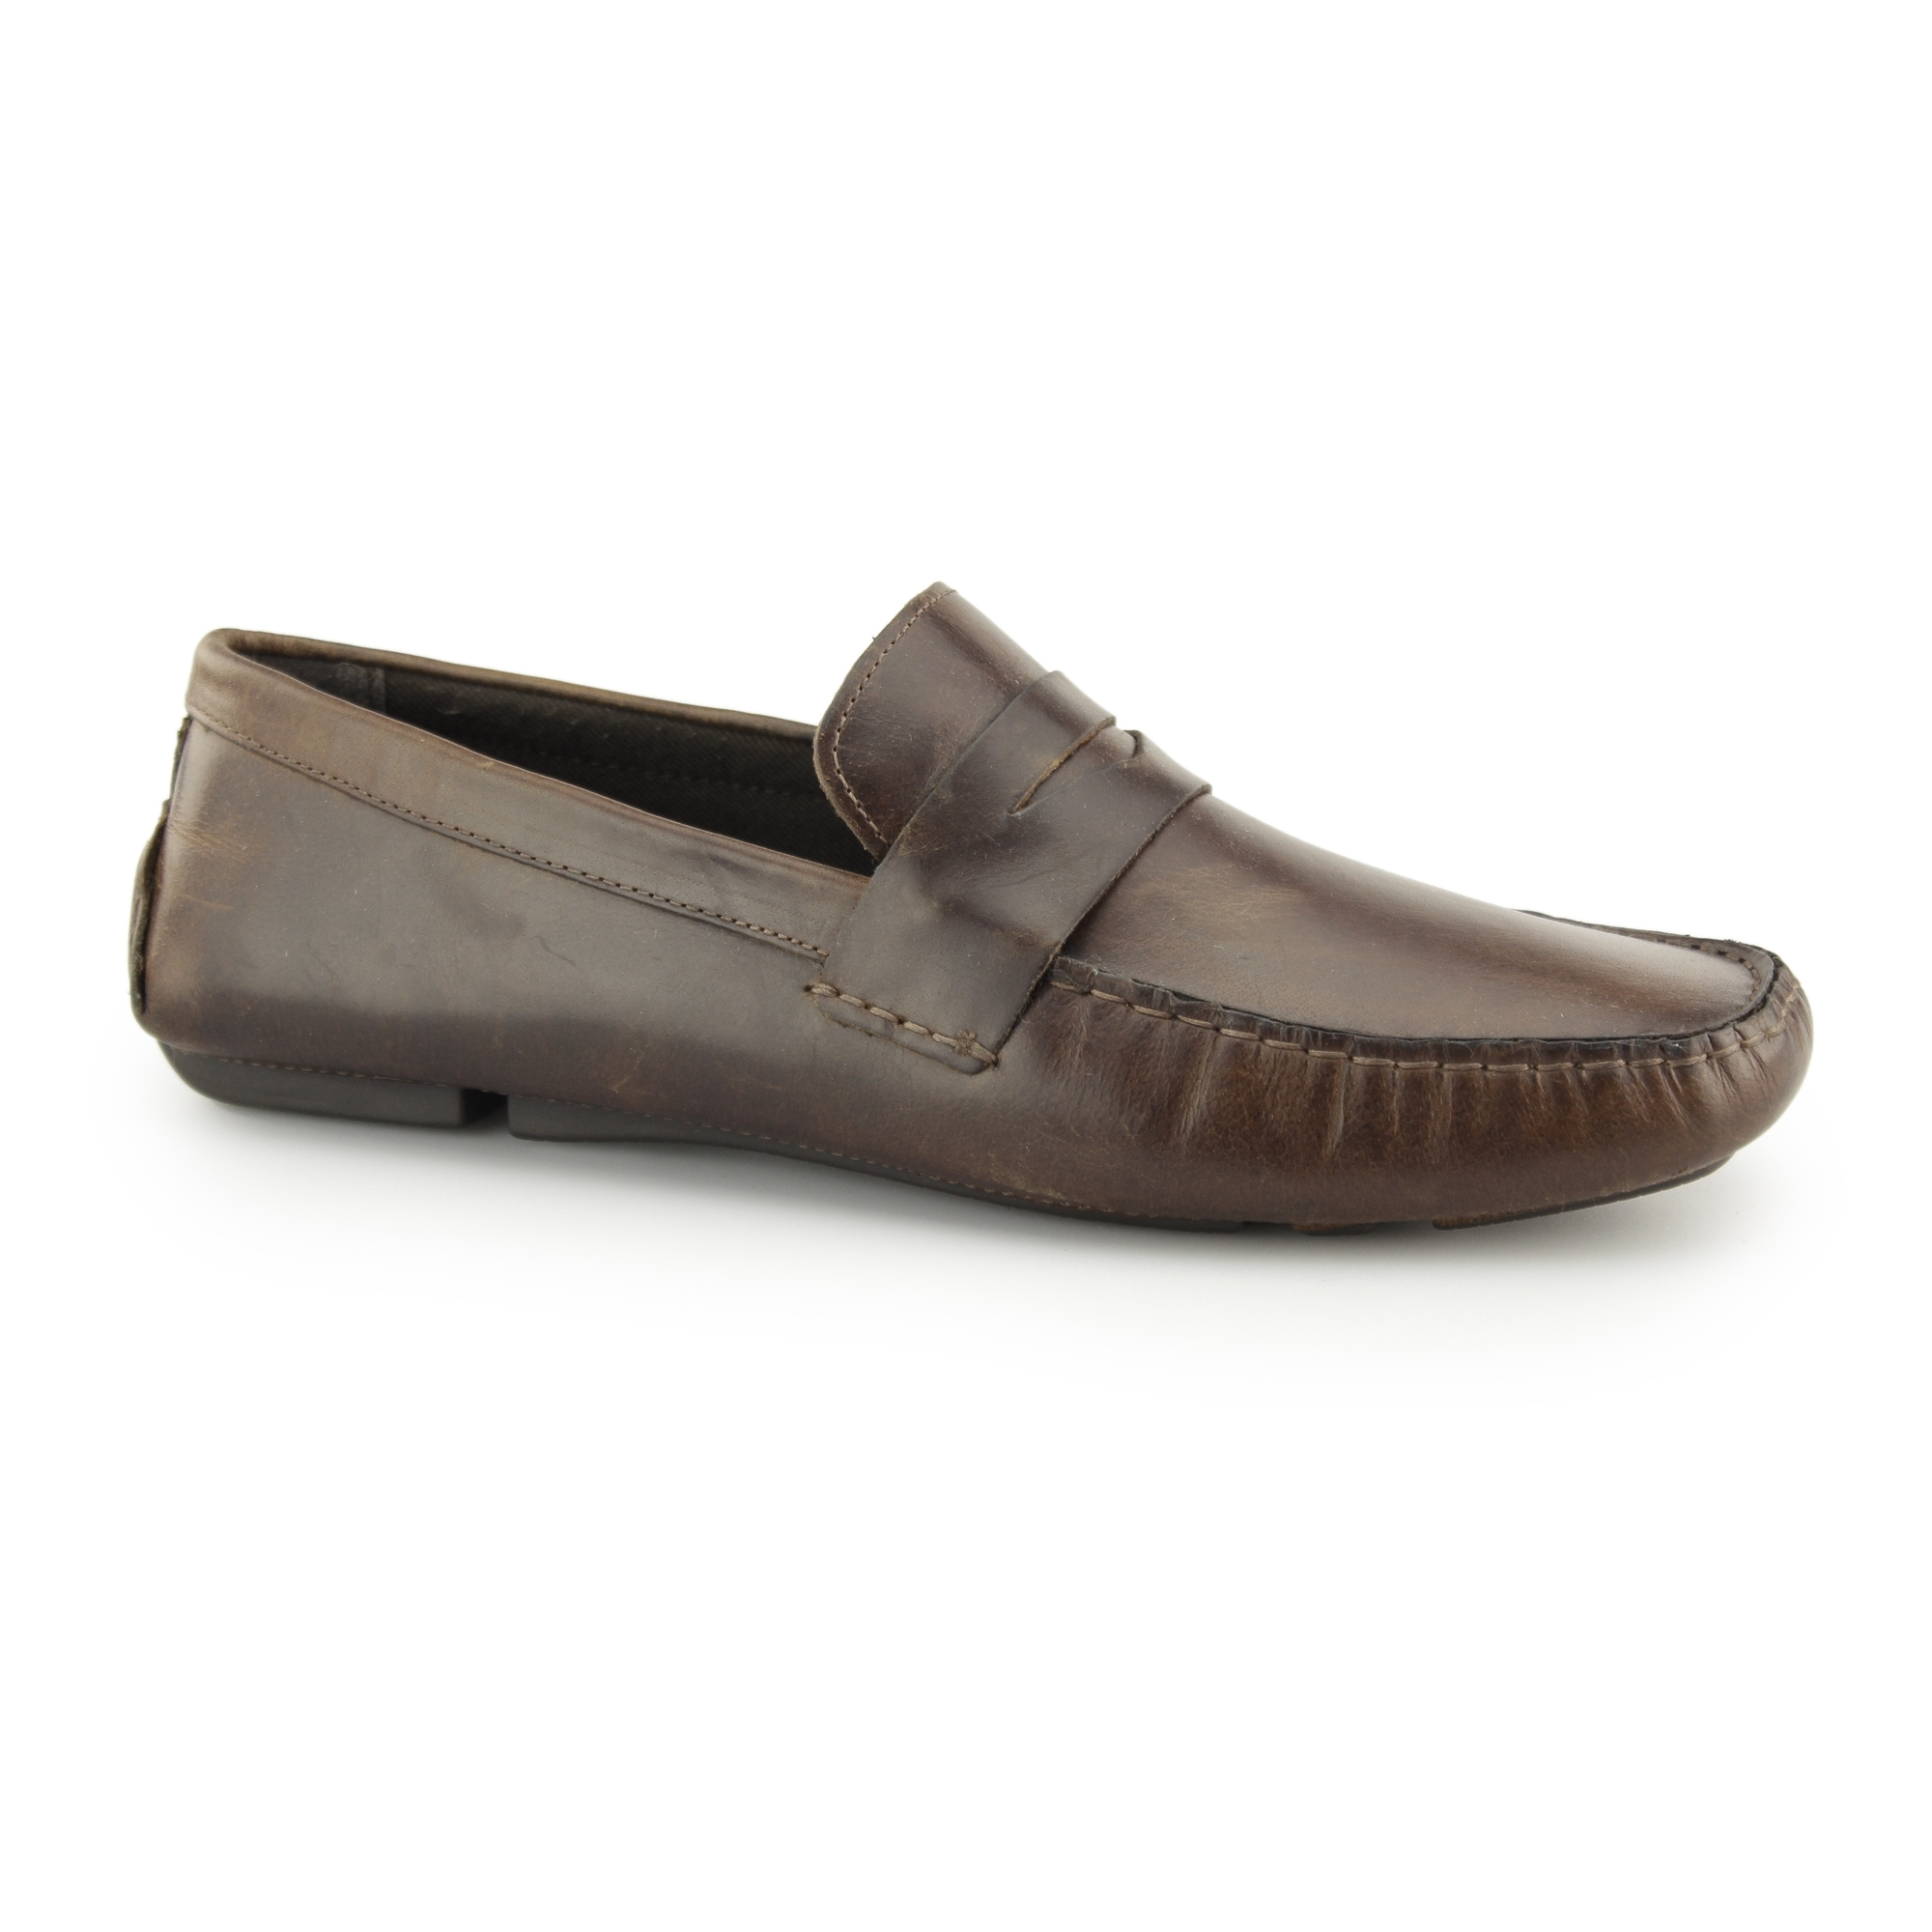 6fb83b328c9 Red Tape CRANFIELD Mens Leather Driving Loafers Tan